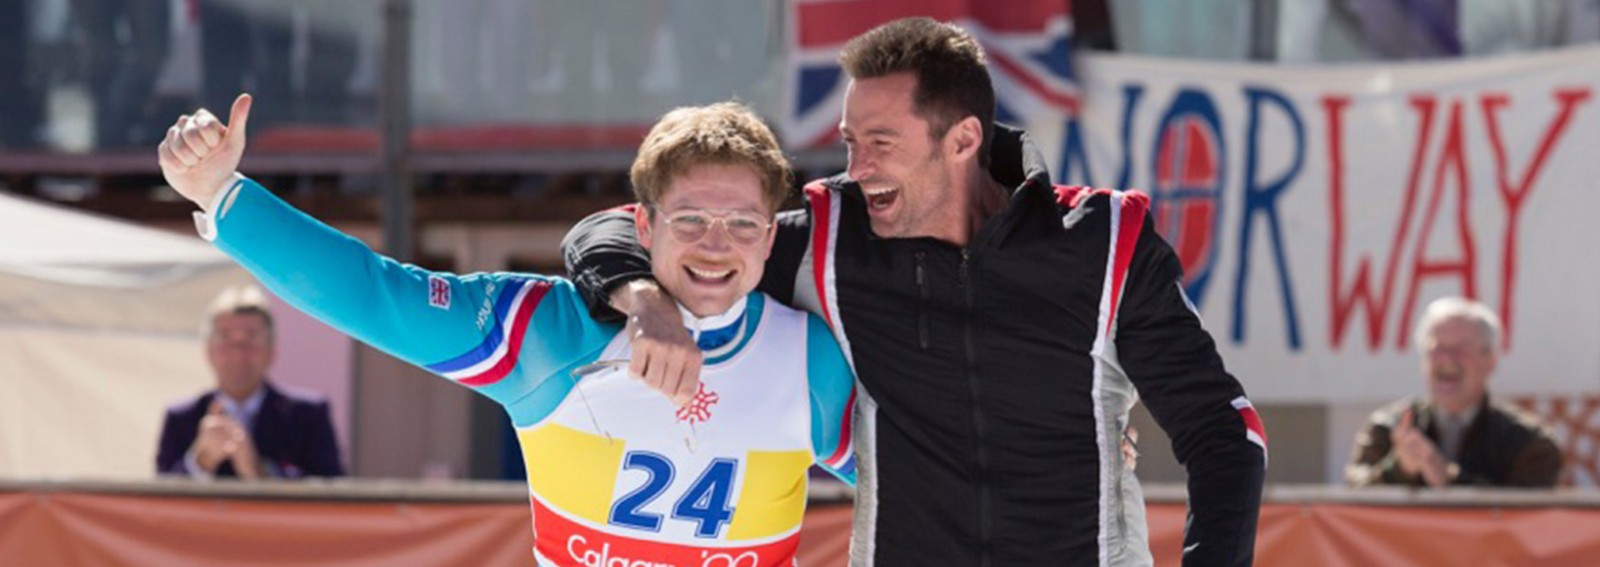 Get a sneak peek at the inspirational story of 'Eddie the Eagle'